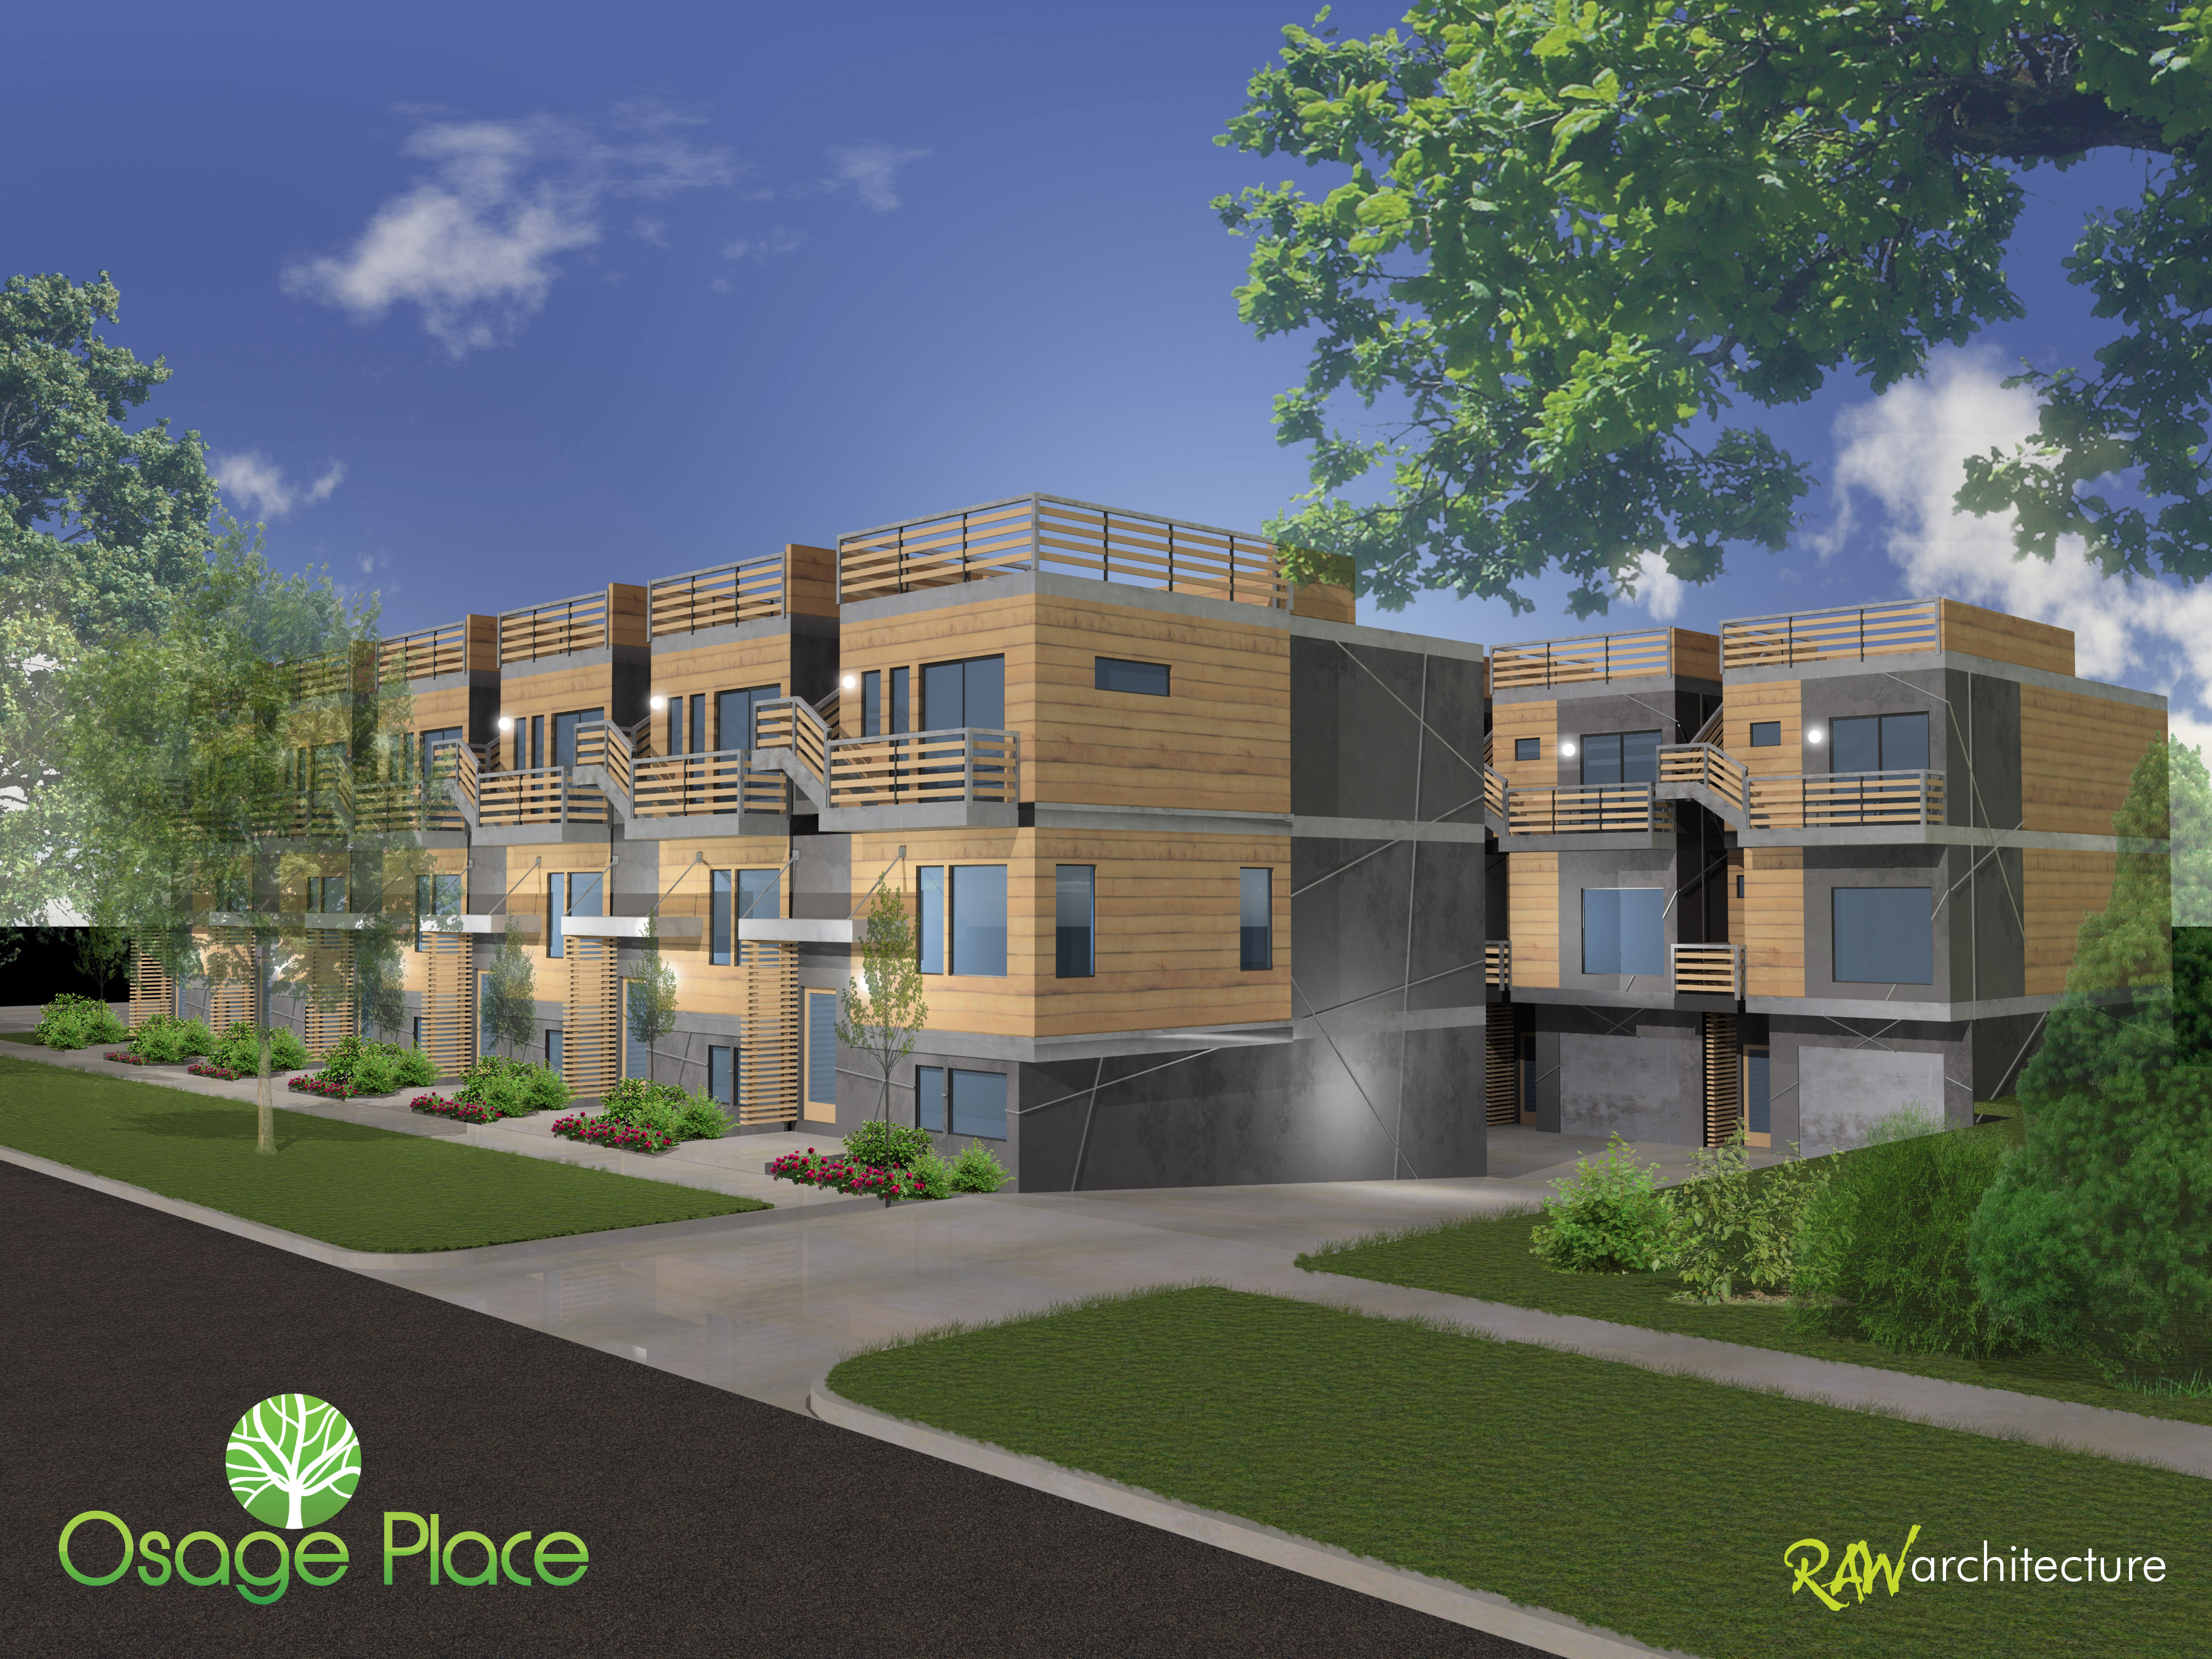 Osage Place Rendering